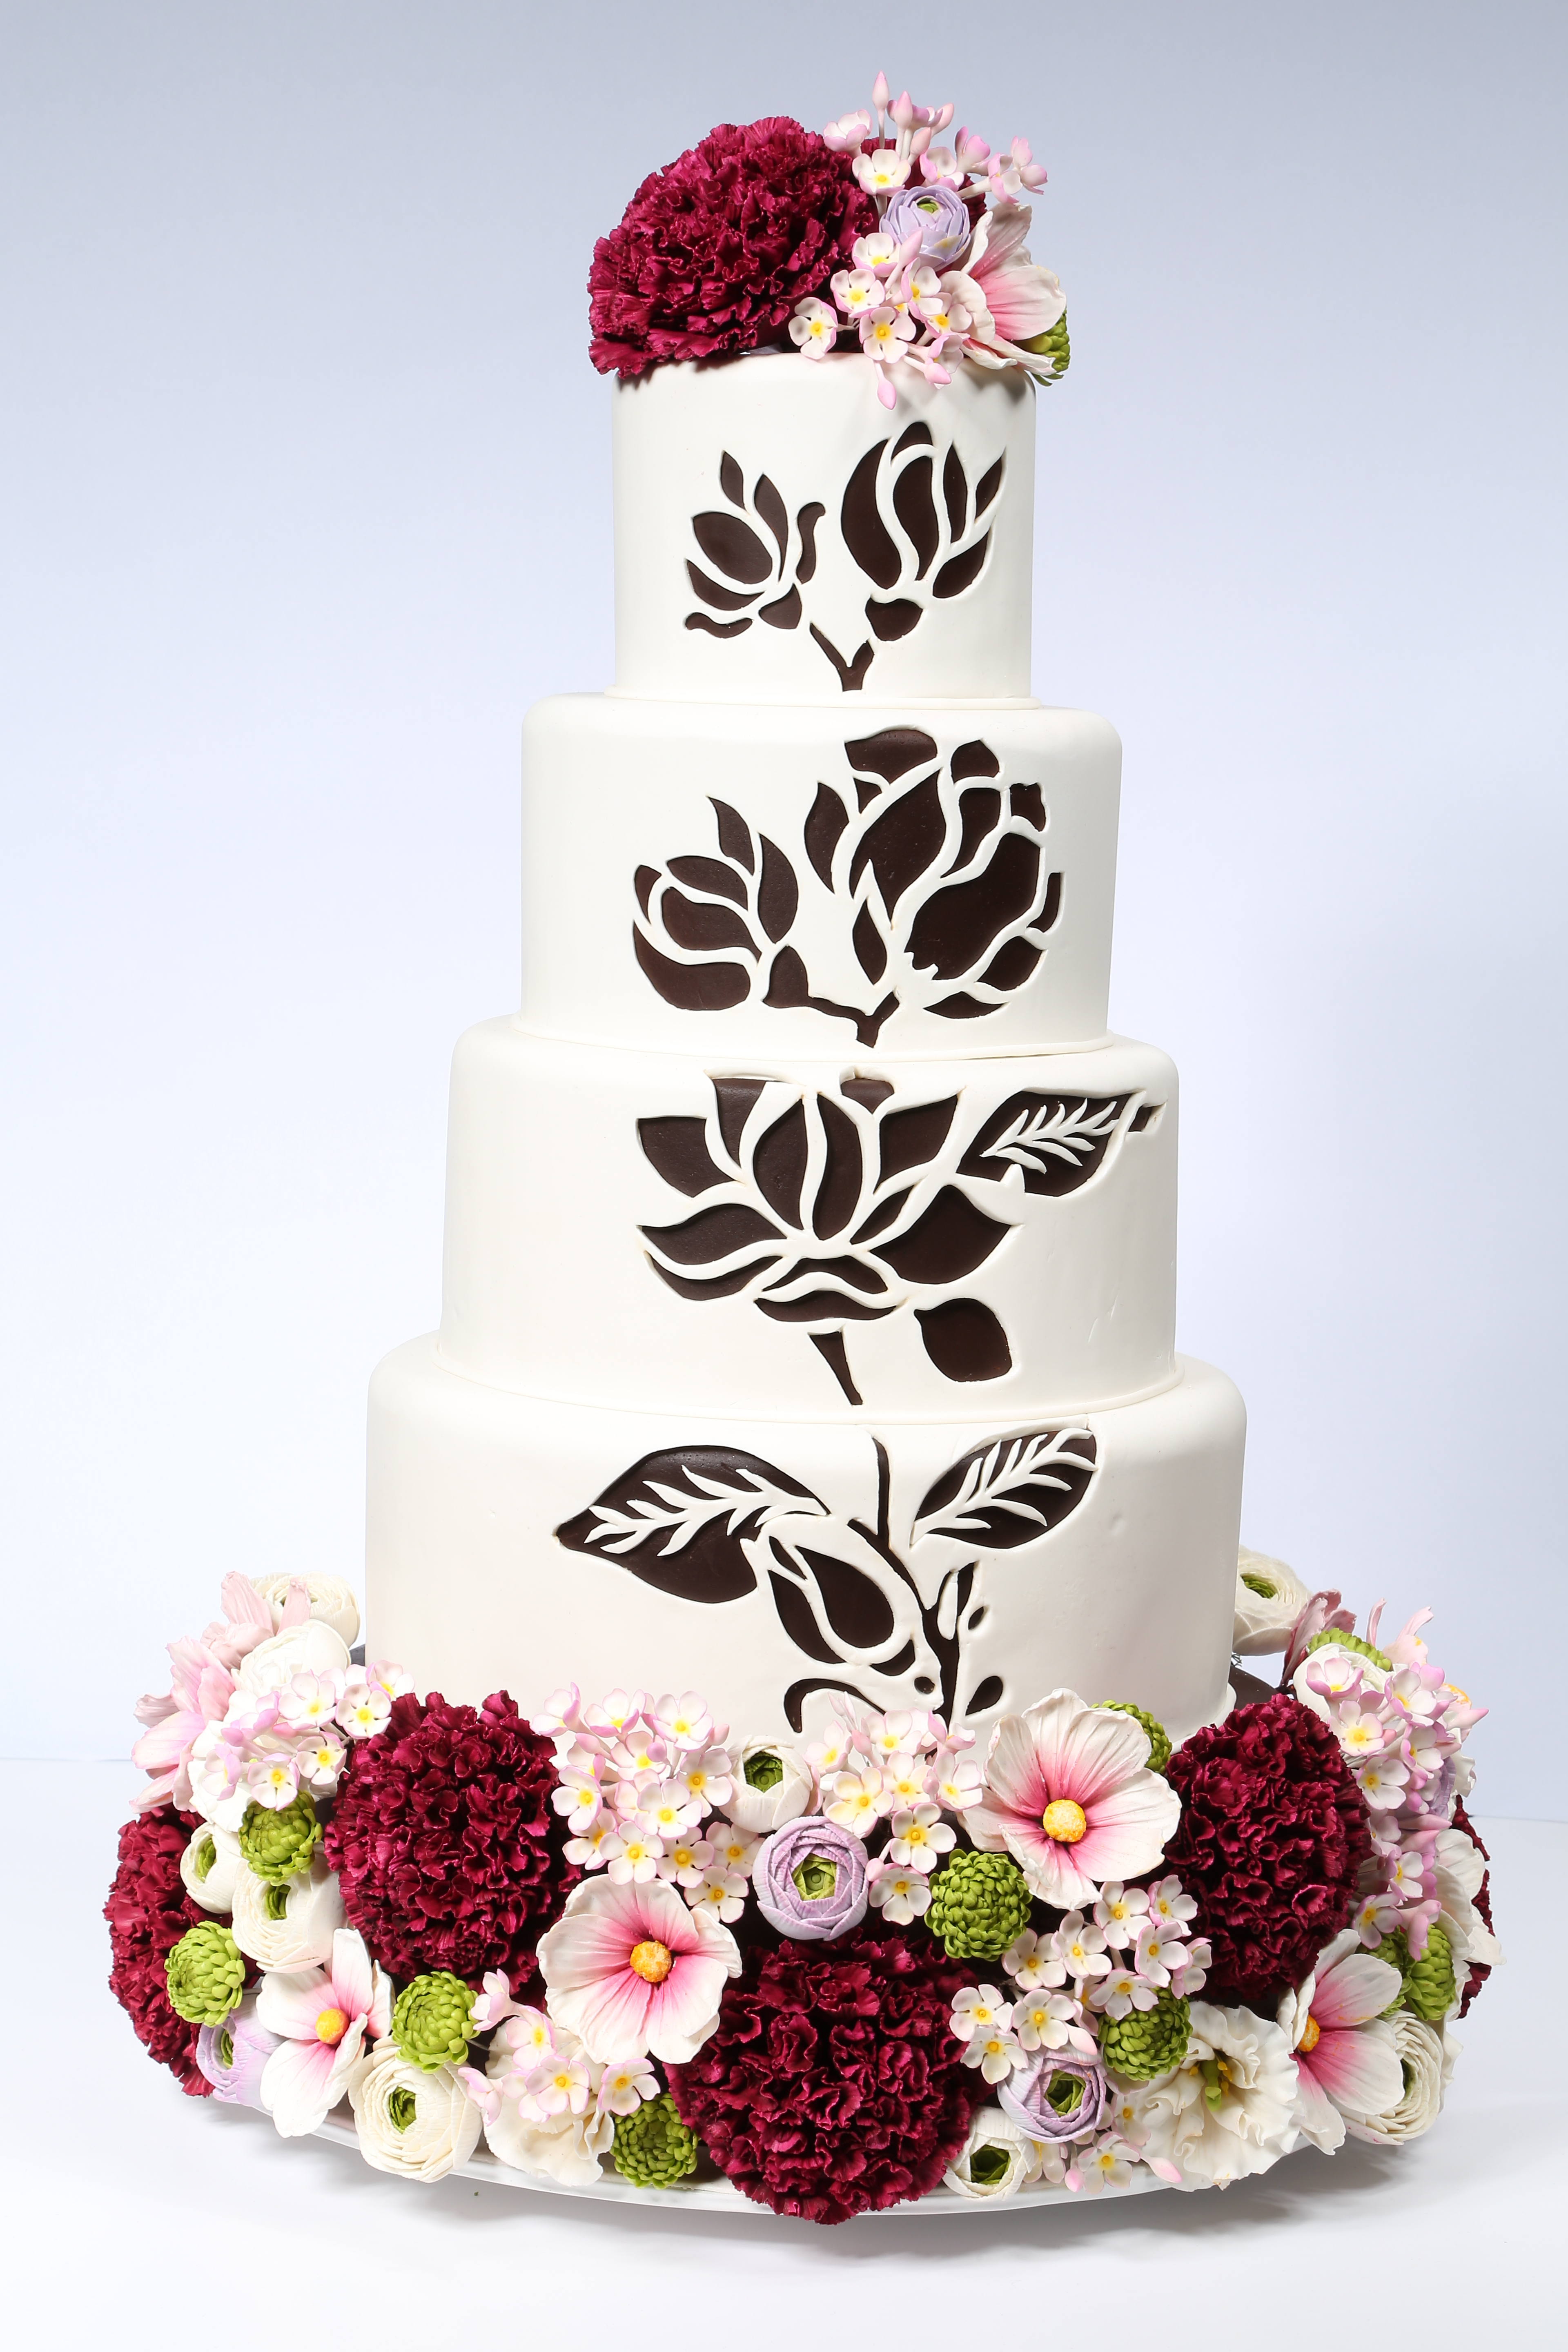 White and black stencil wedding cake